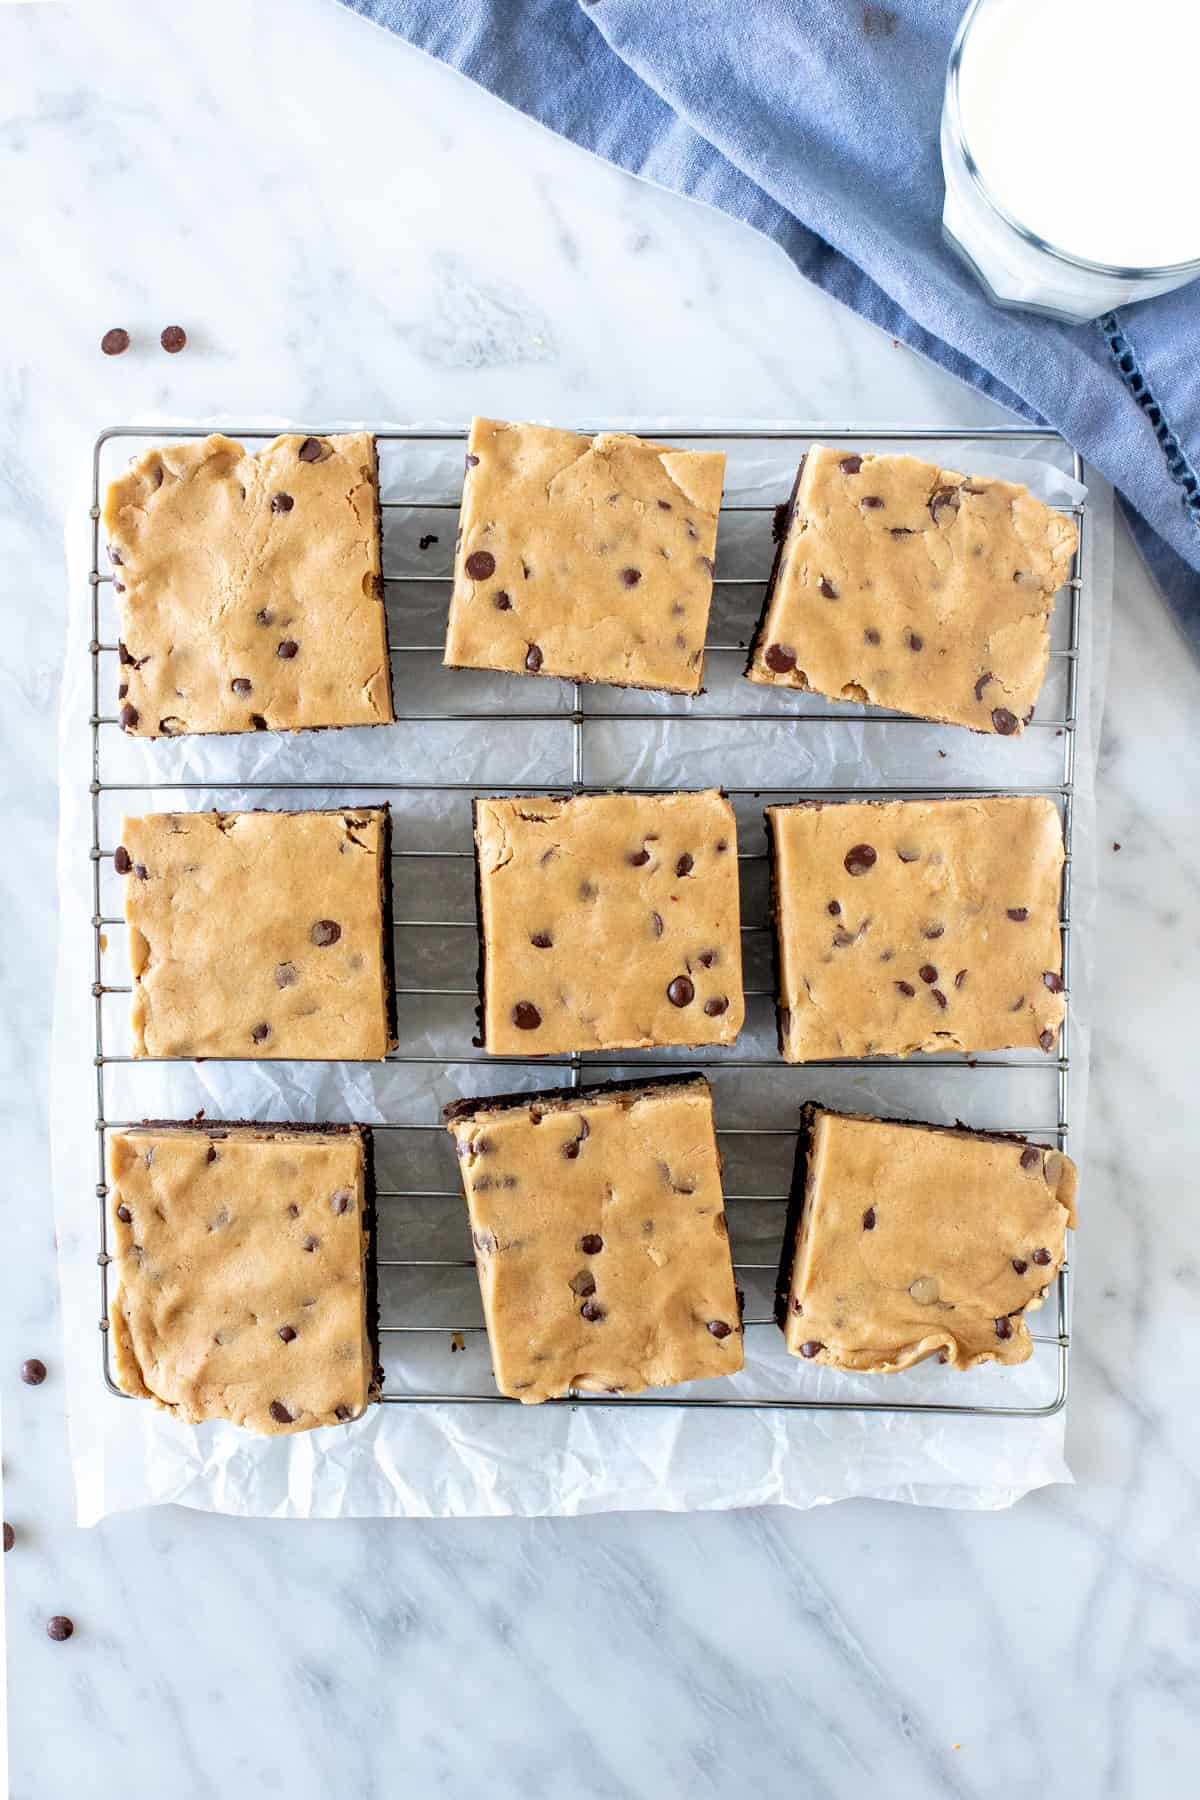 Cooling rack with 9 cookie dough topped brownies